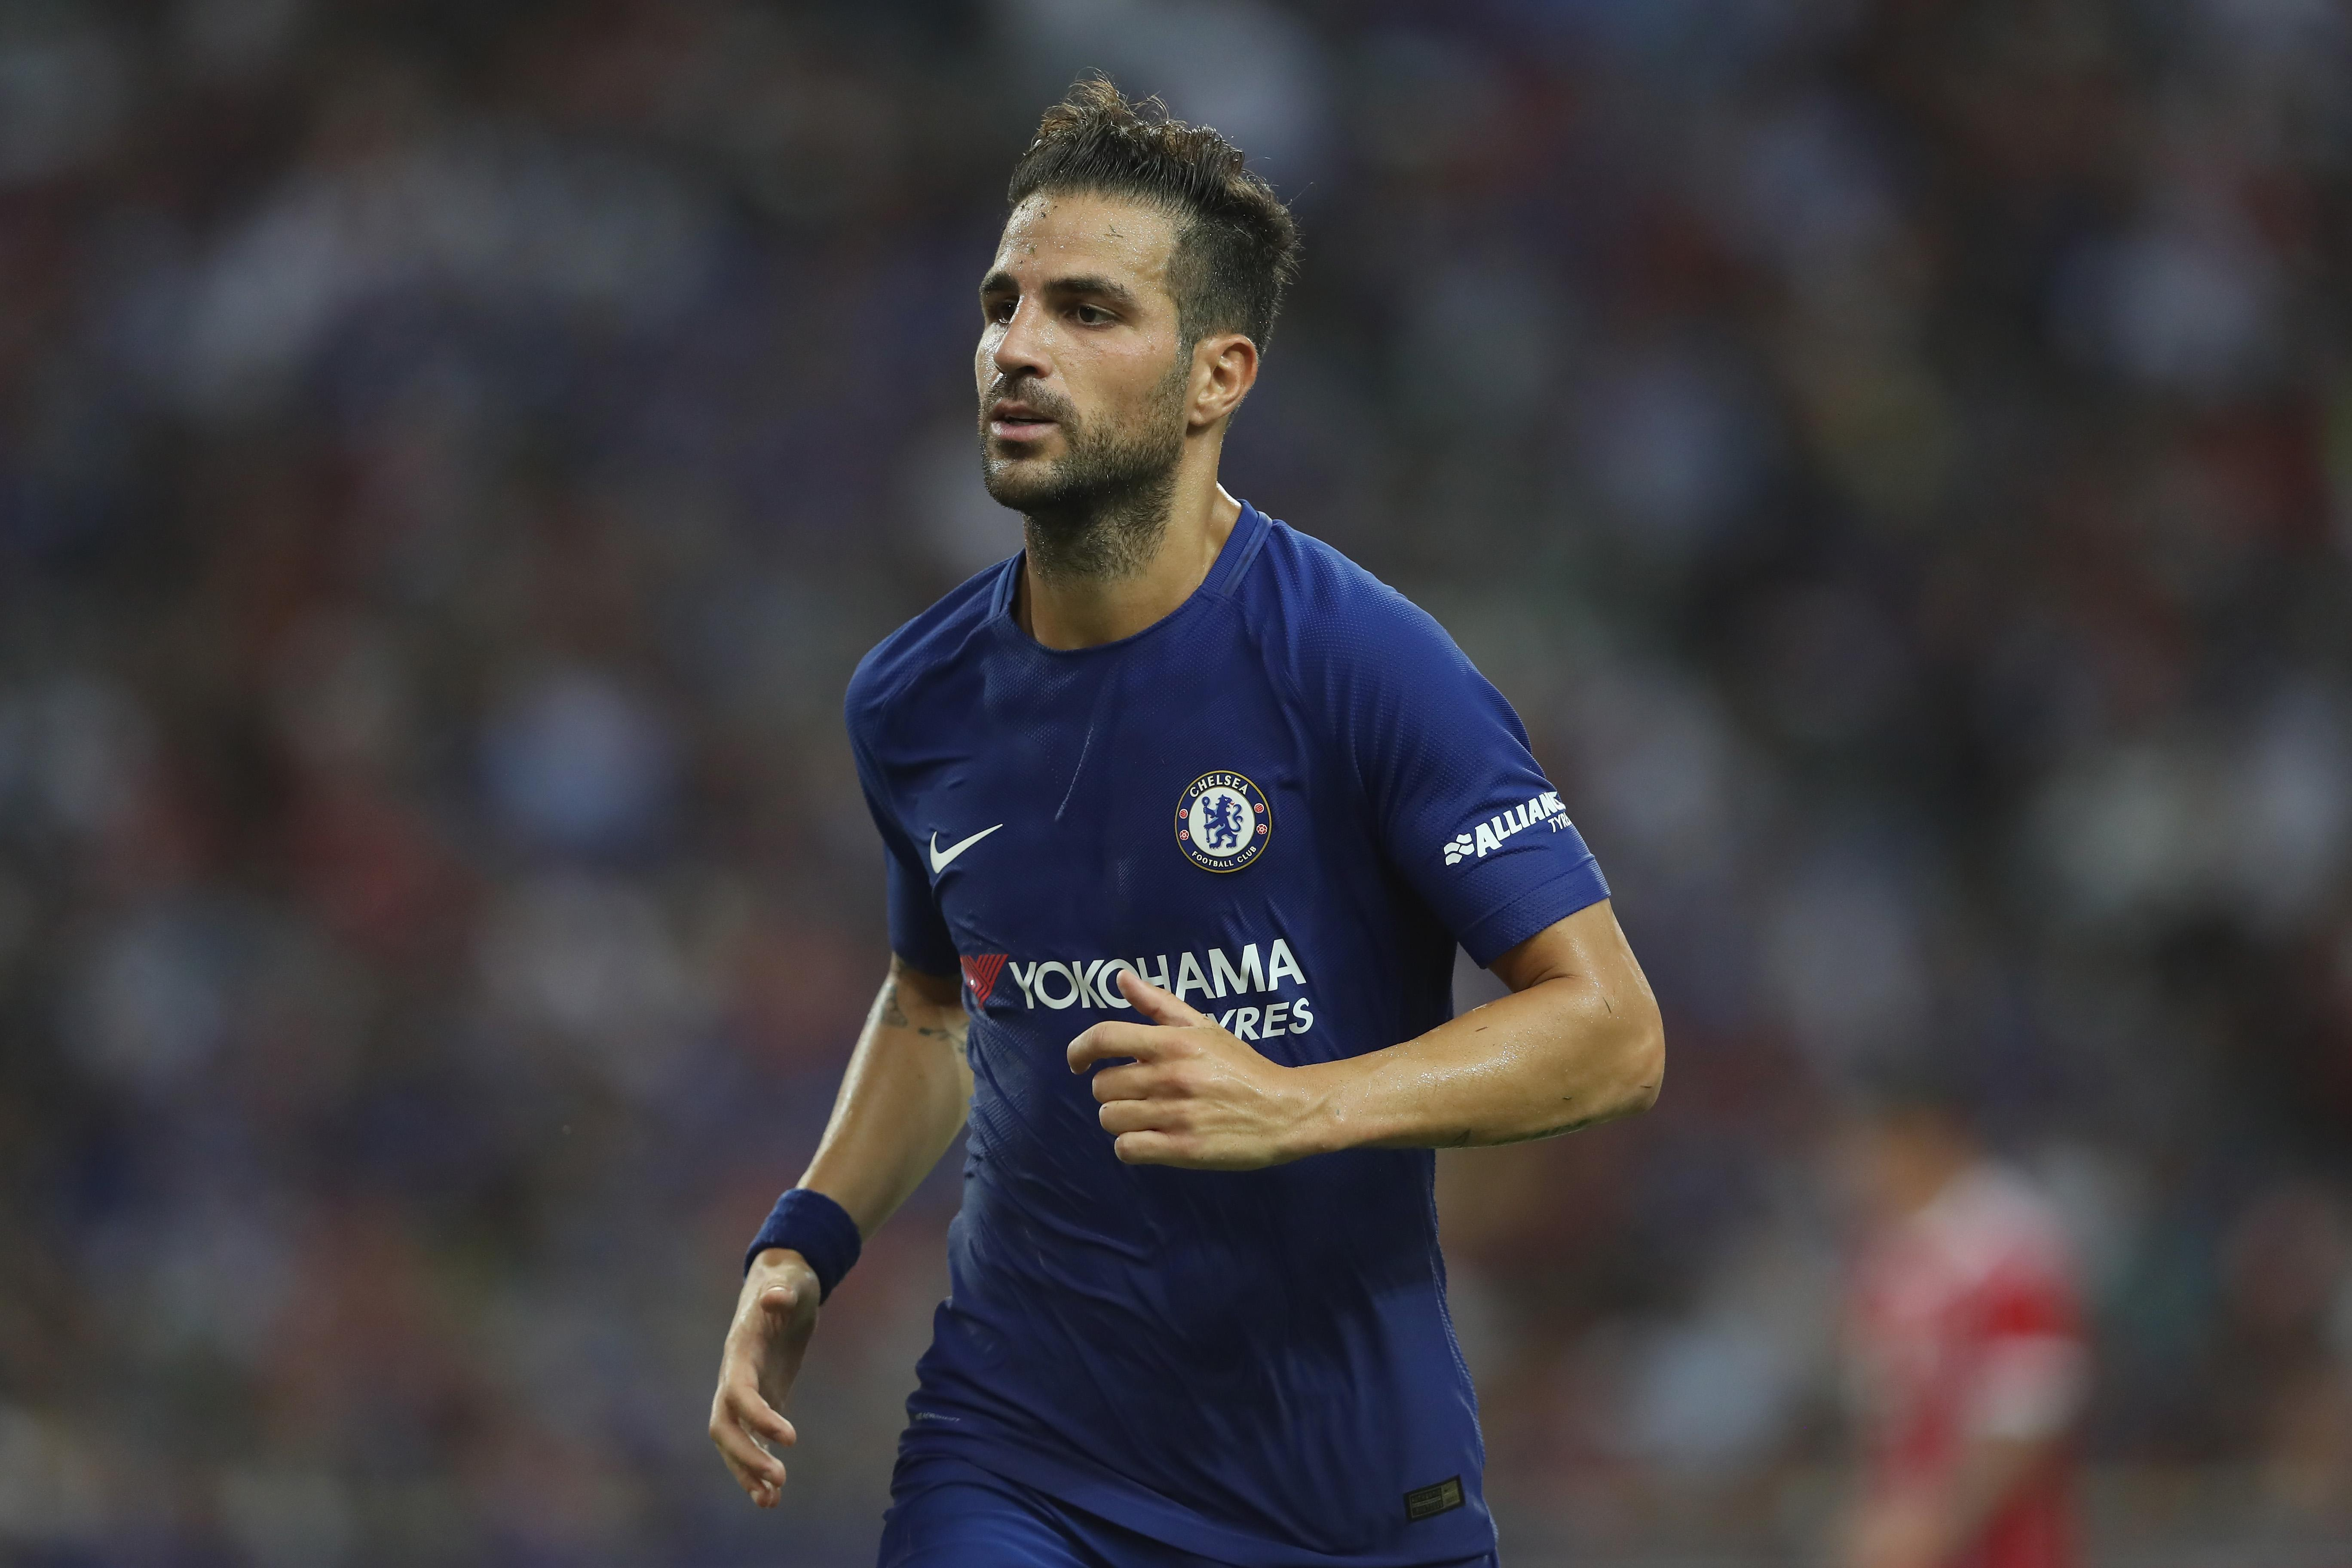 Watch Fabgreas Shocks Chelsea Training With Impressive Pace